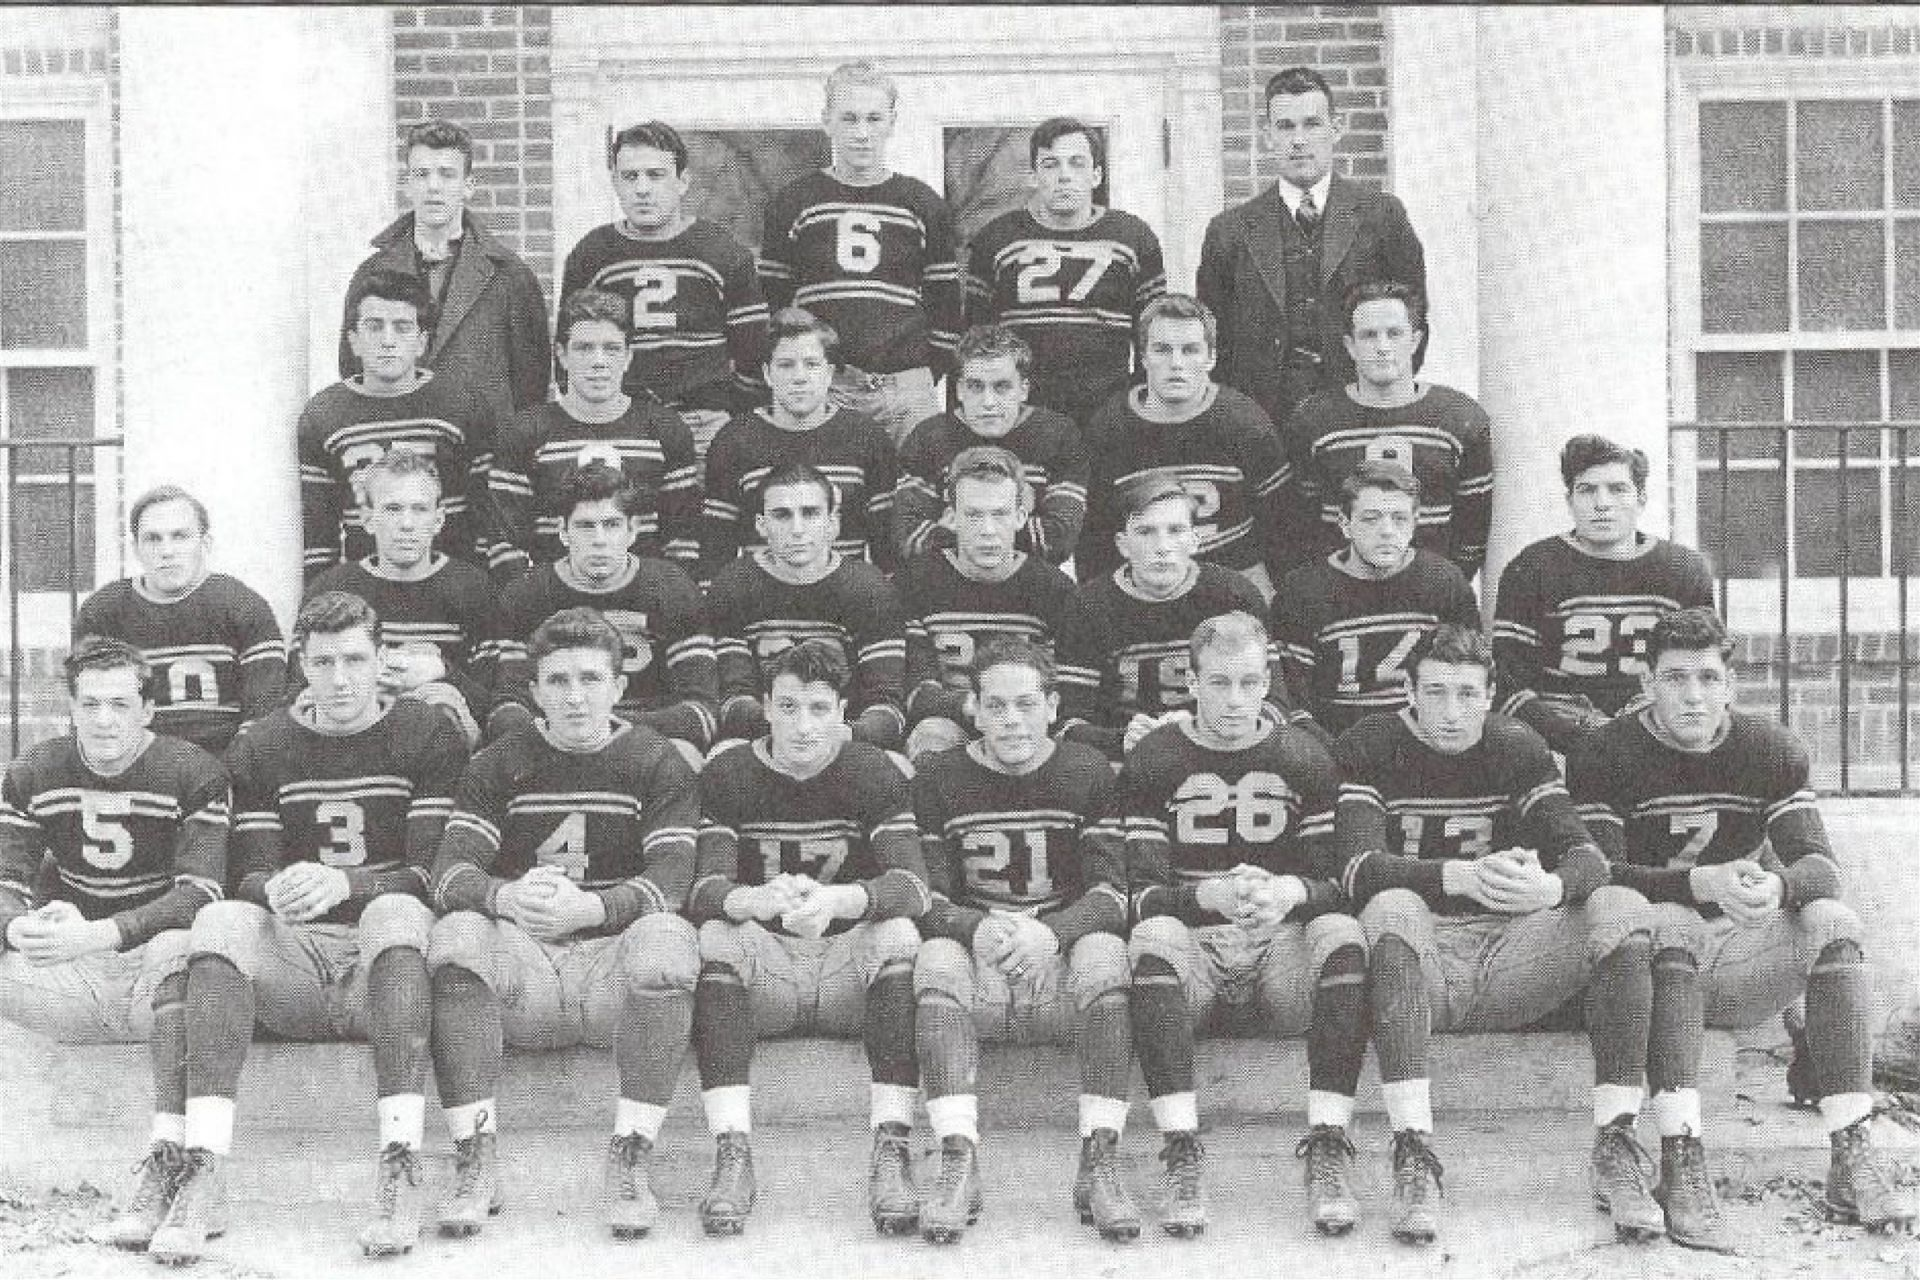 1939: The football team, which has been competing with other schools since 1893, has an undefeated season, a feat that they will repeat in 1962.